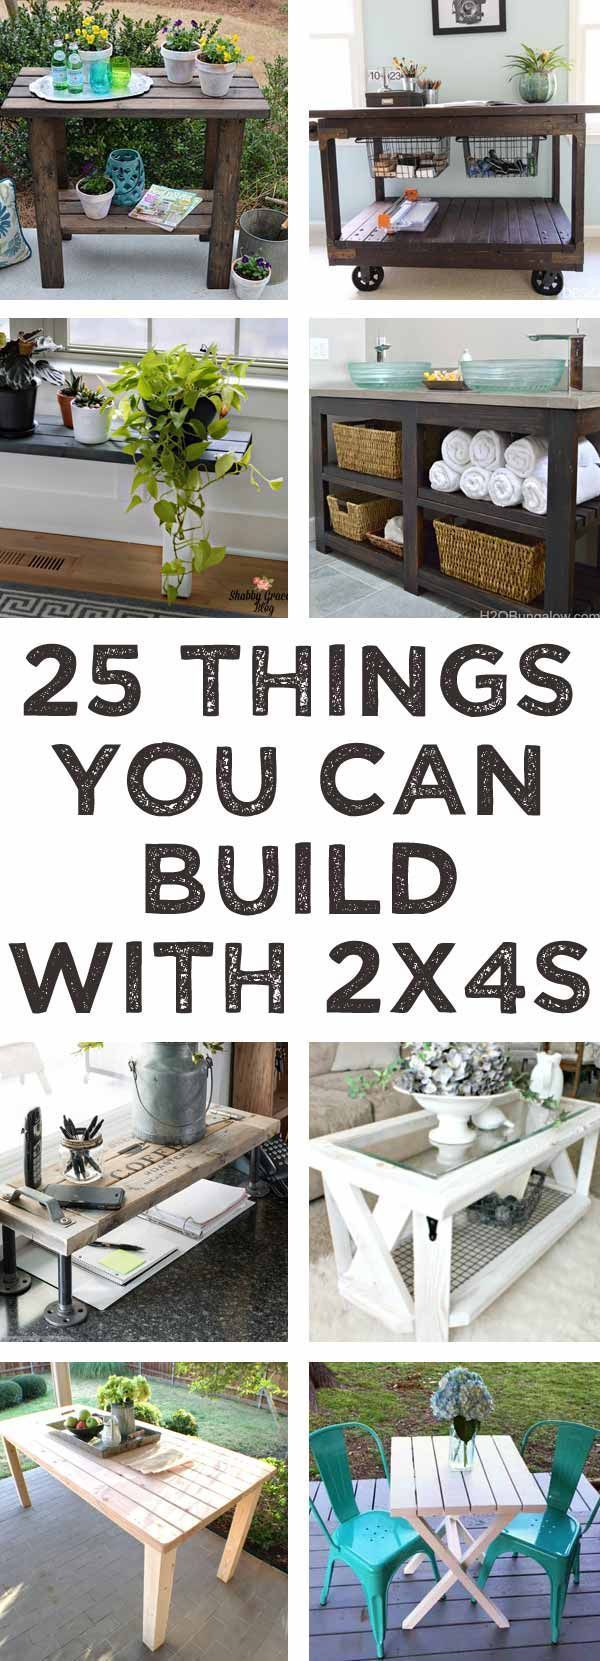 Diy Crafts Ideas : So many good ideas here for things to build with 2x4s!